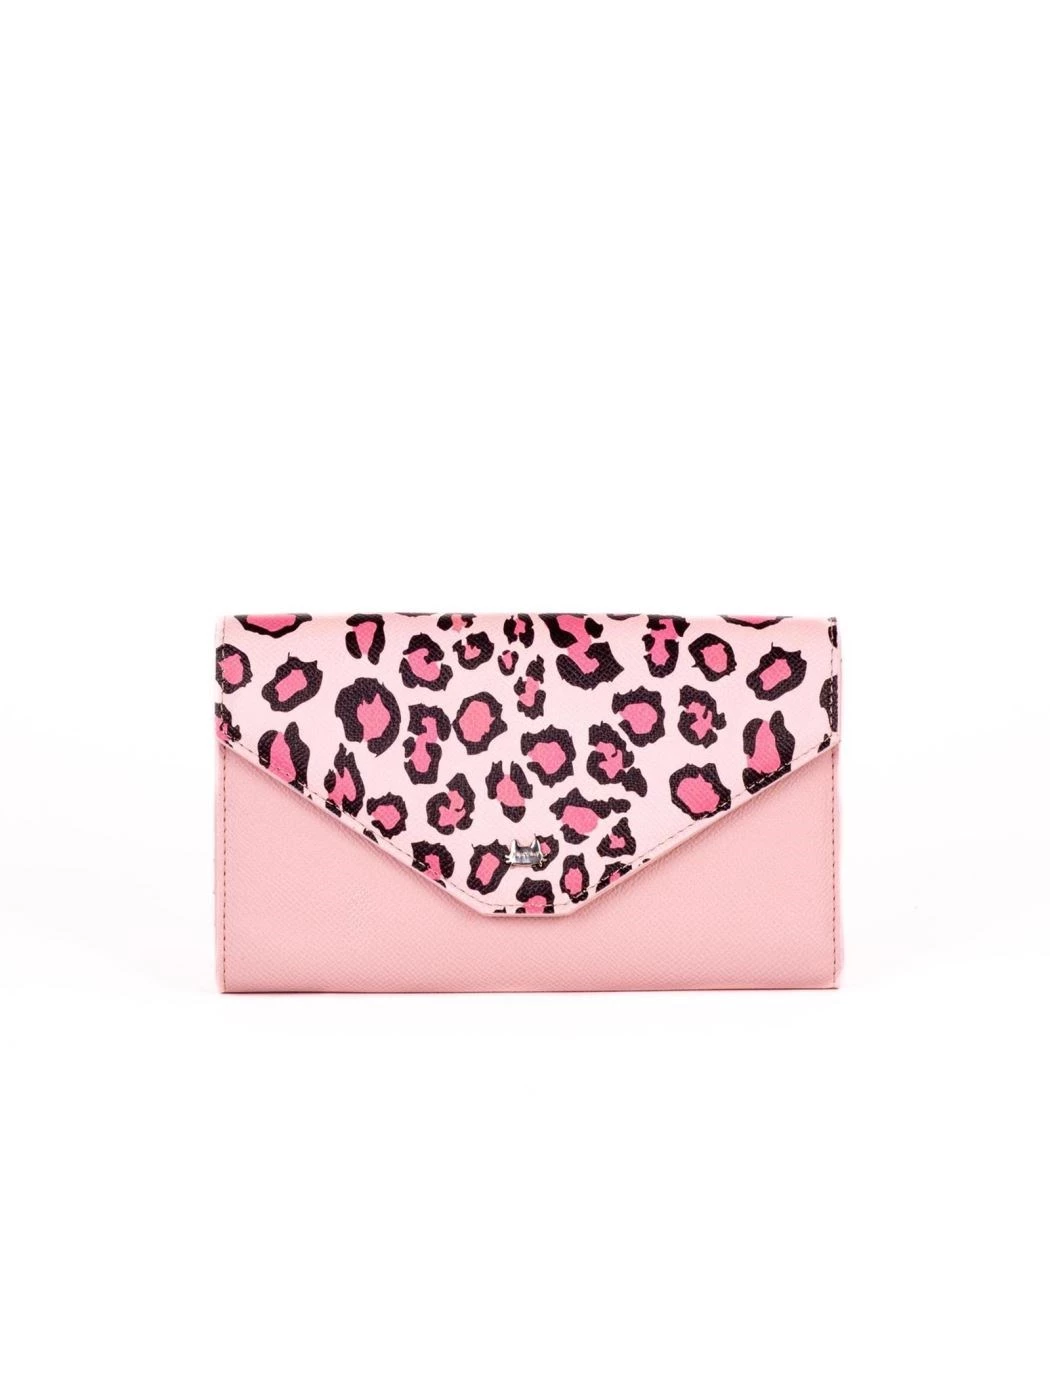 SPOTTED WALLET